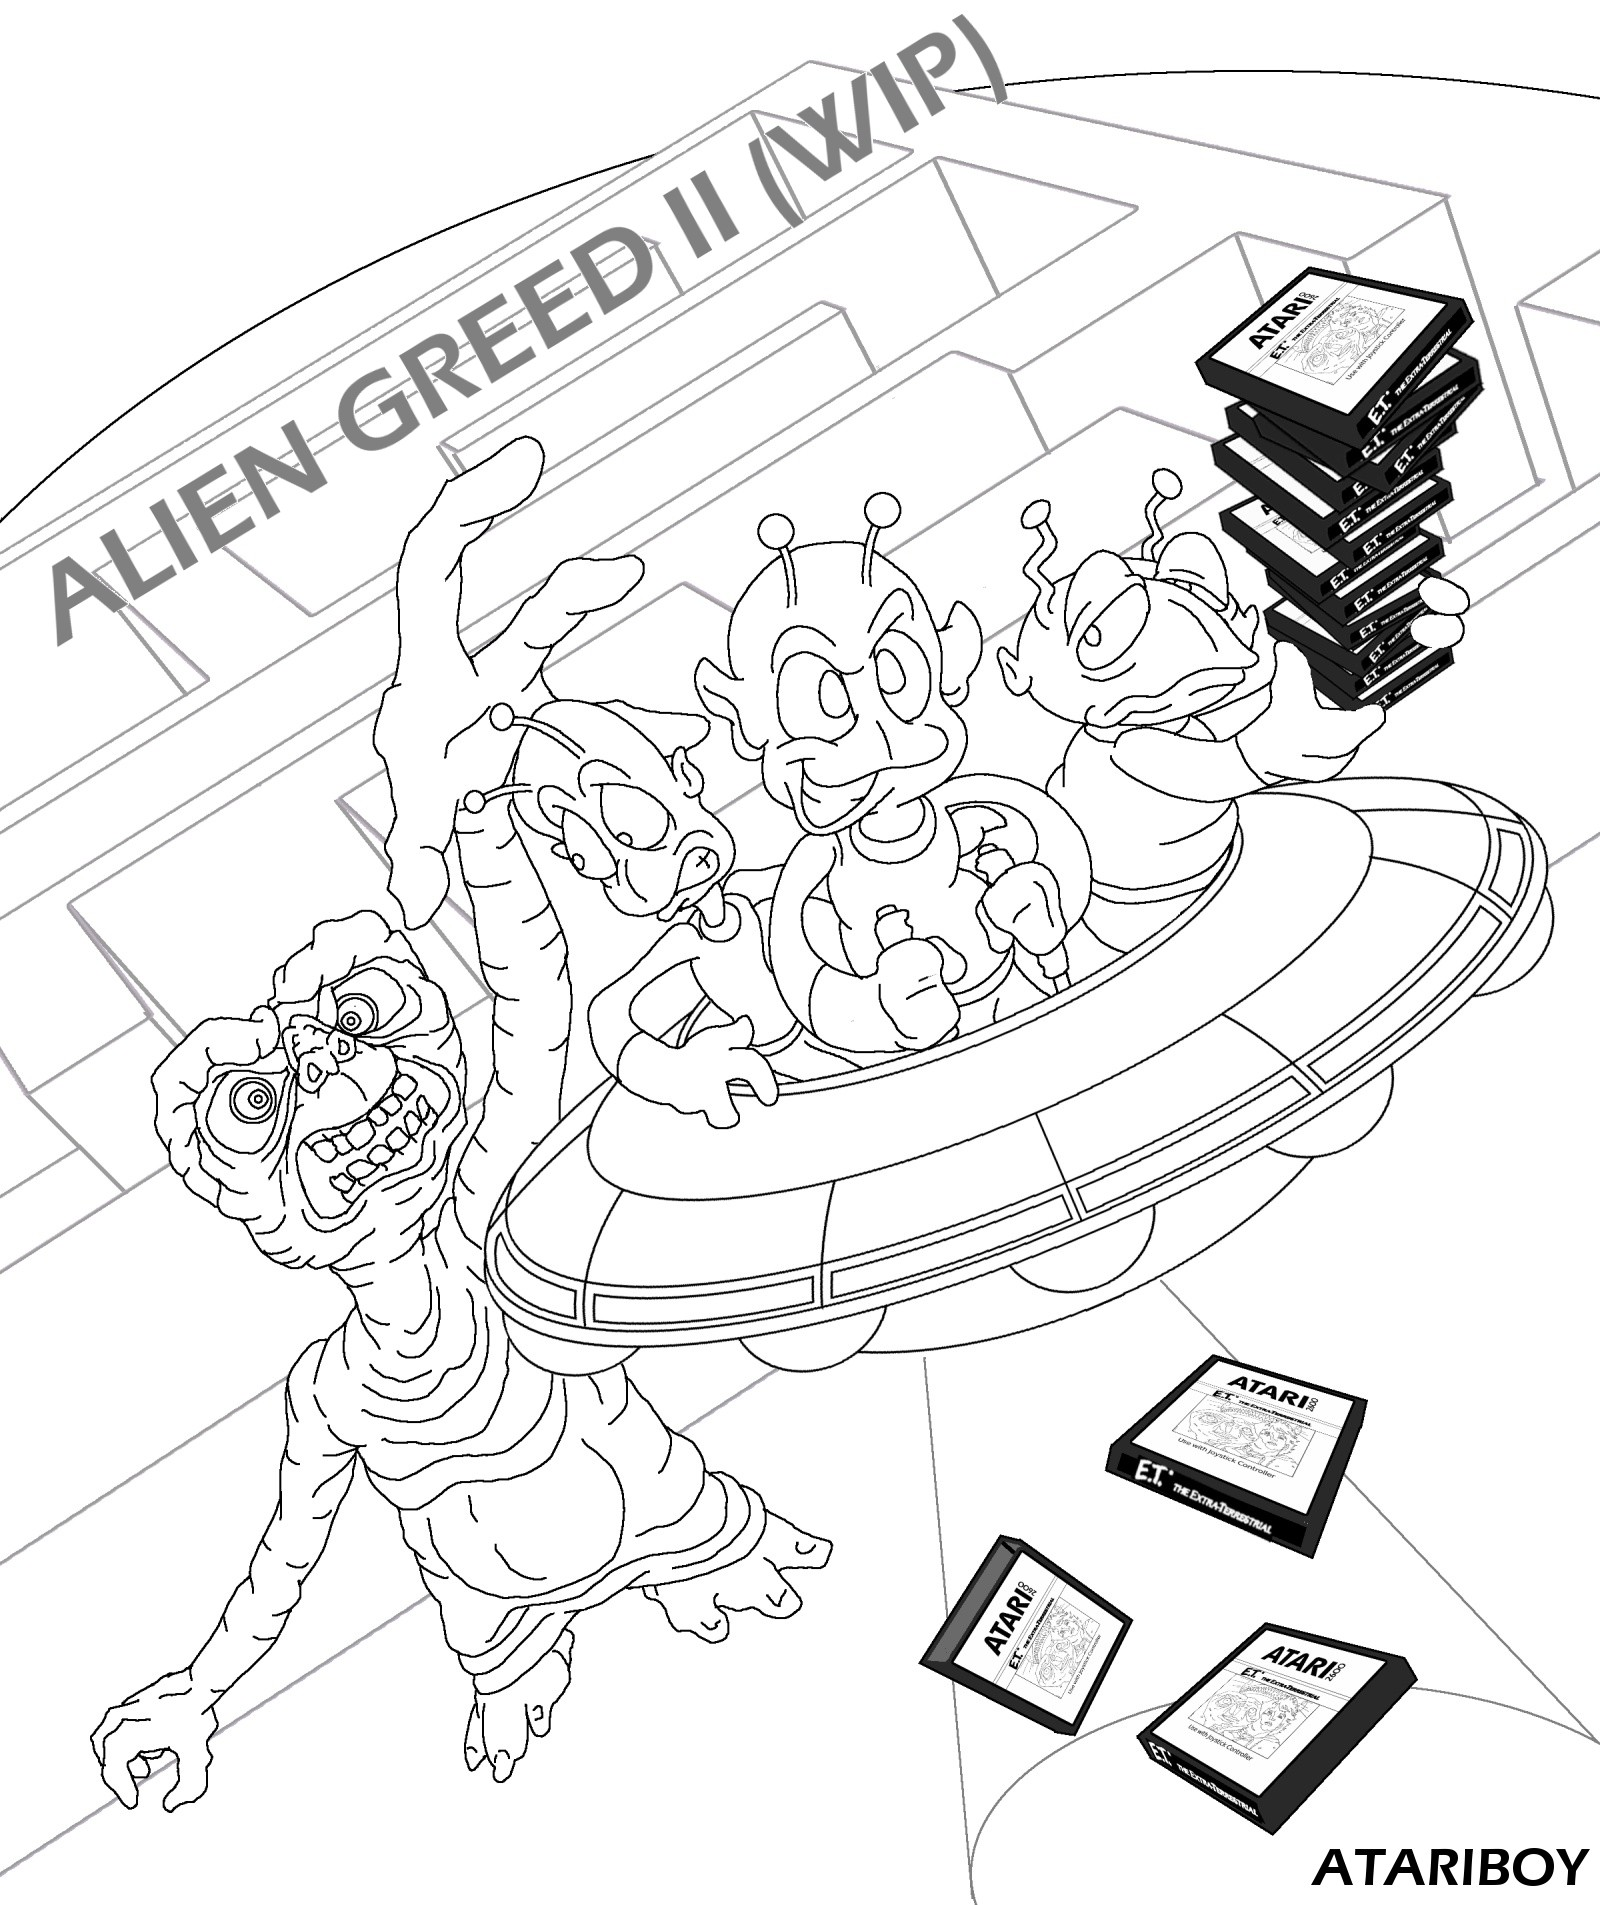 Zoop in addition ATARI Alien Greed II Label WIP 77206178 together with Jeux moreover Nintendo 3ds Stylus likewise Sega Master System Schematic. on game boy cartridge